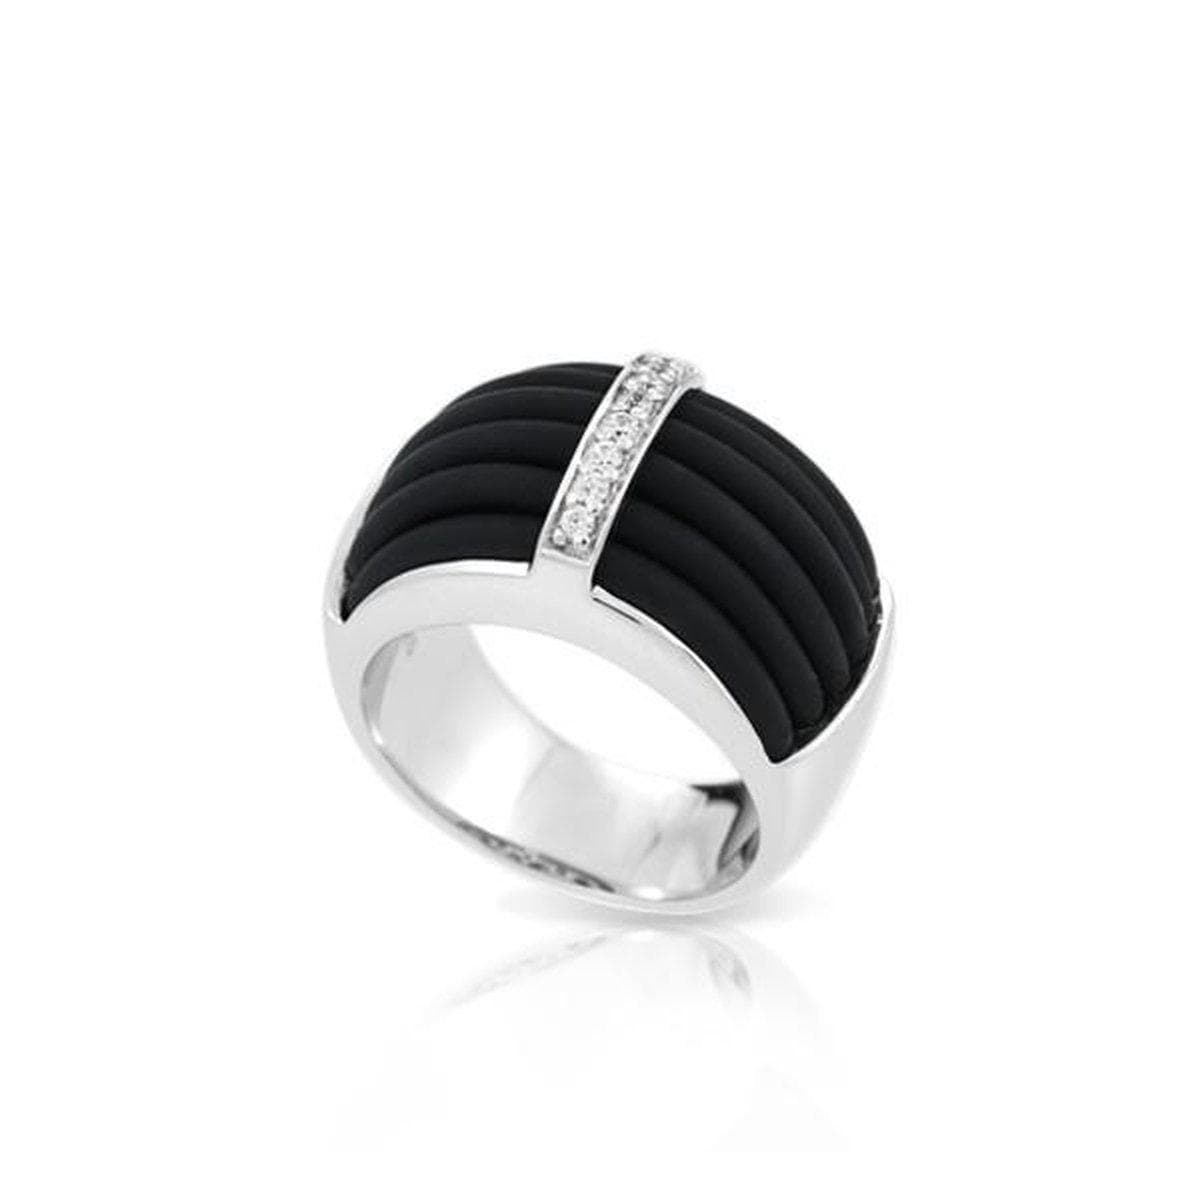 Enrapture Vertical Black Ring-Belle Etoile-Renee Taylor Gallery